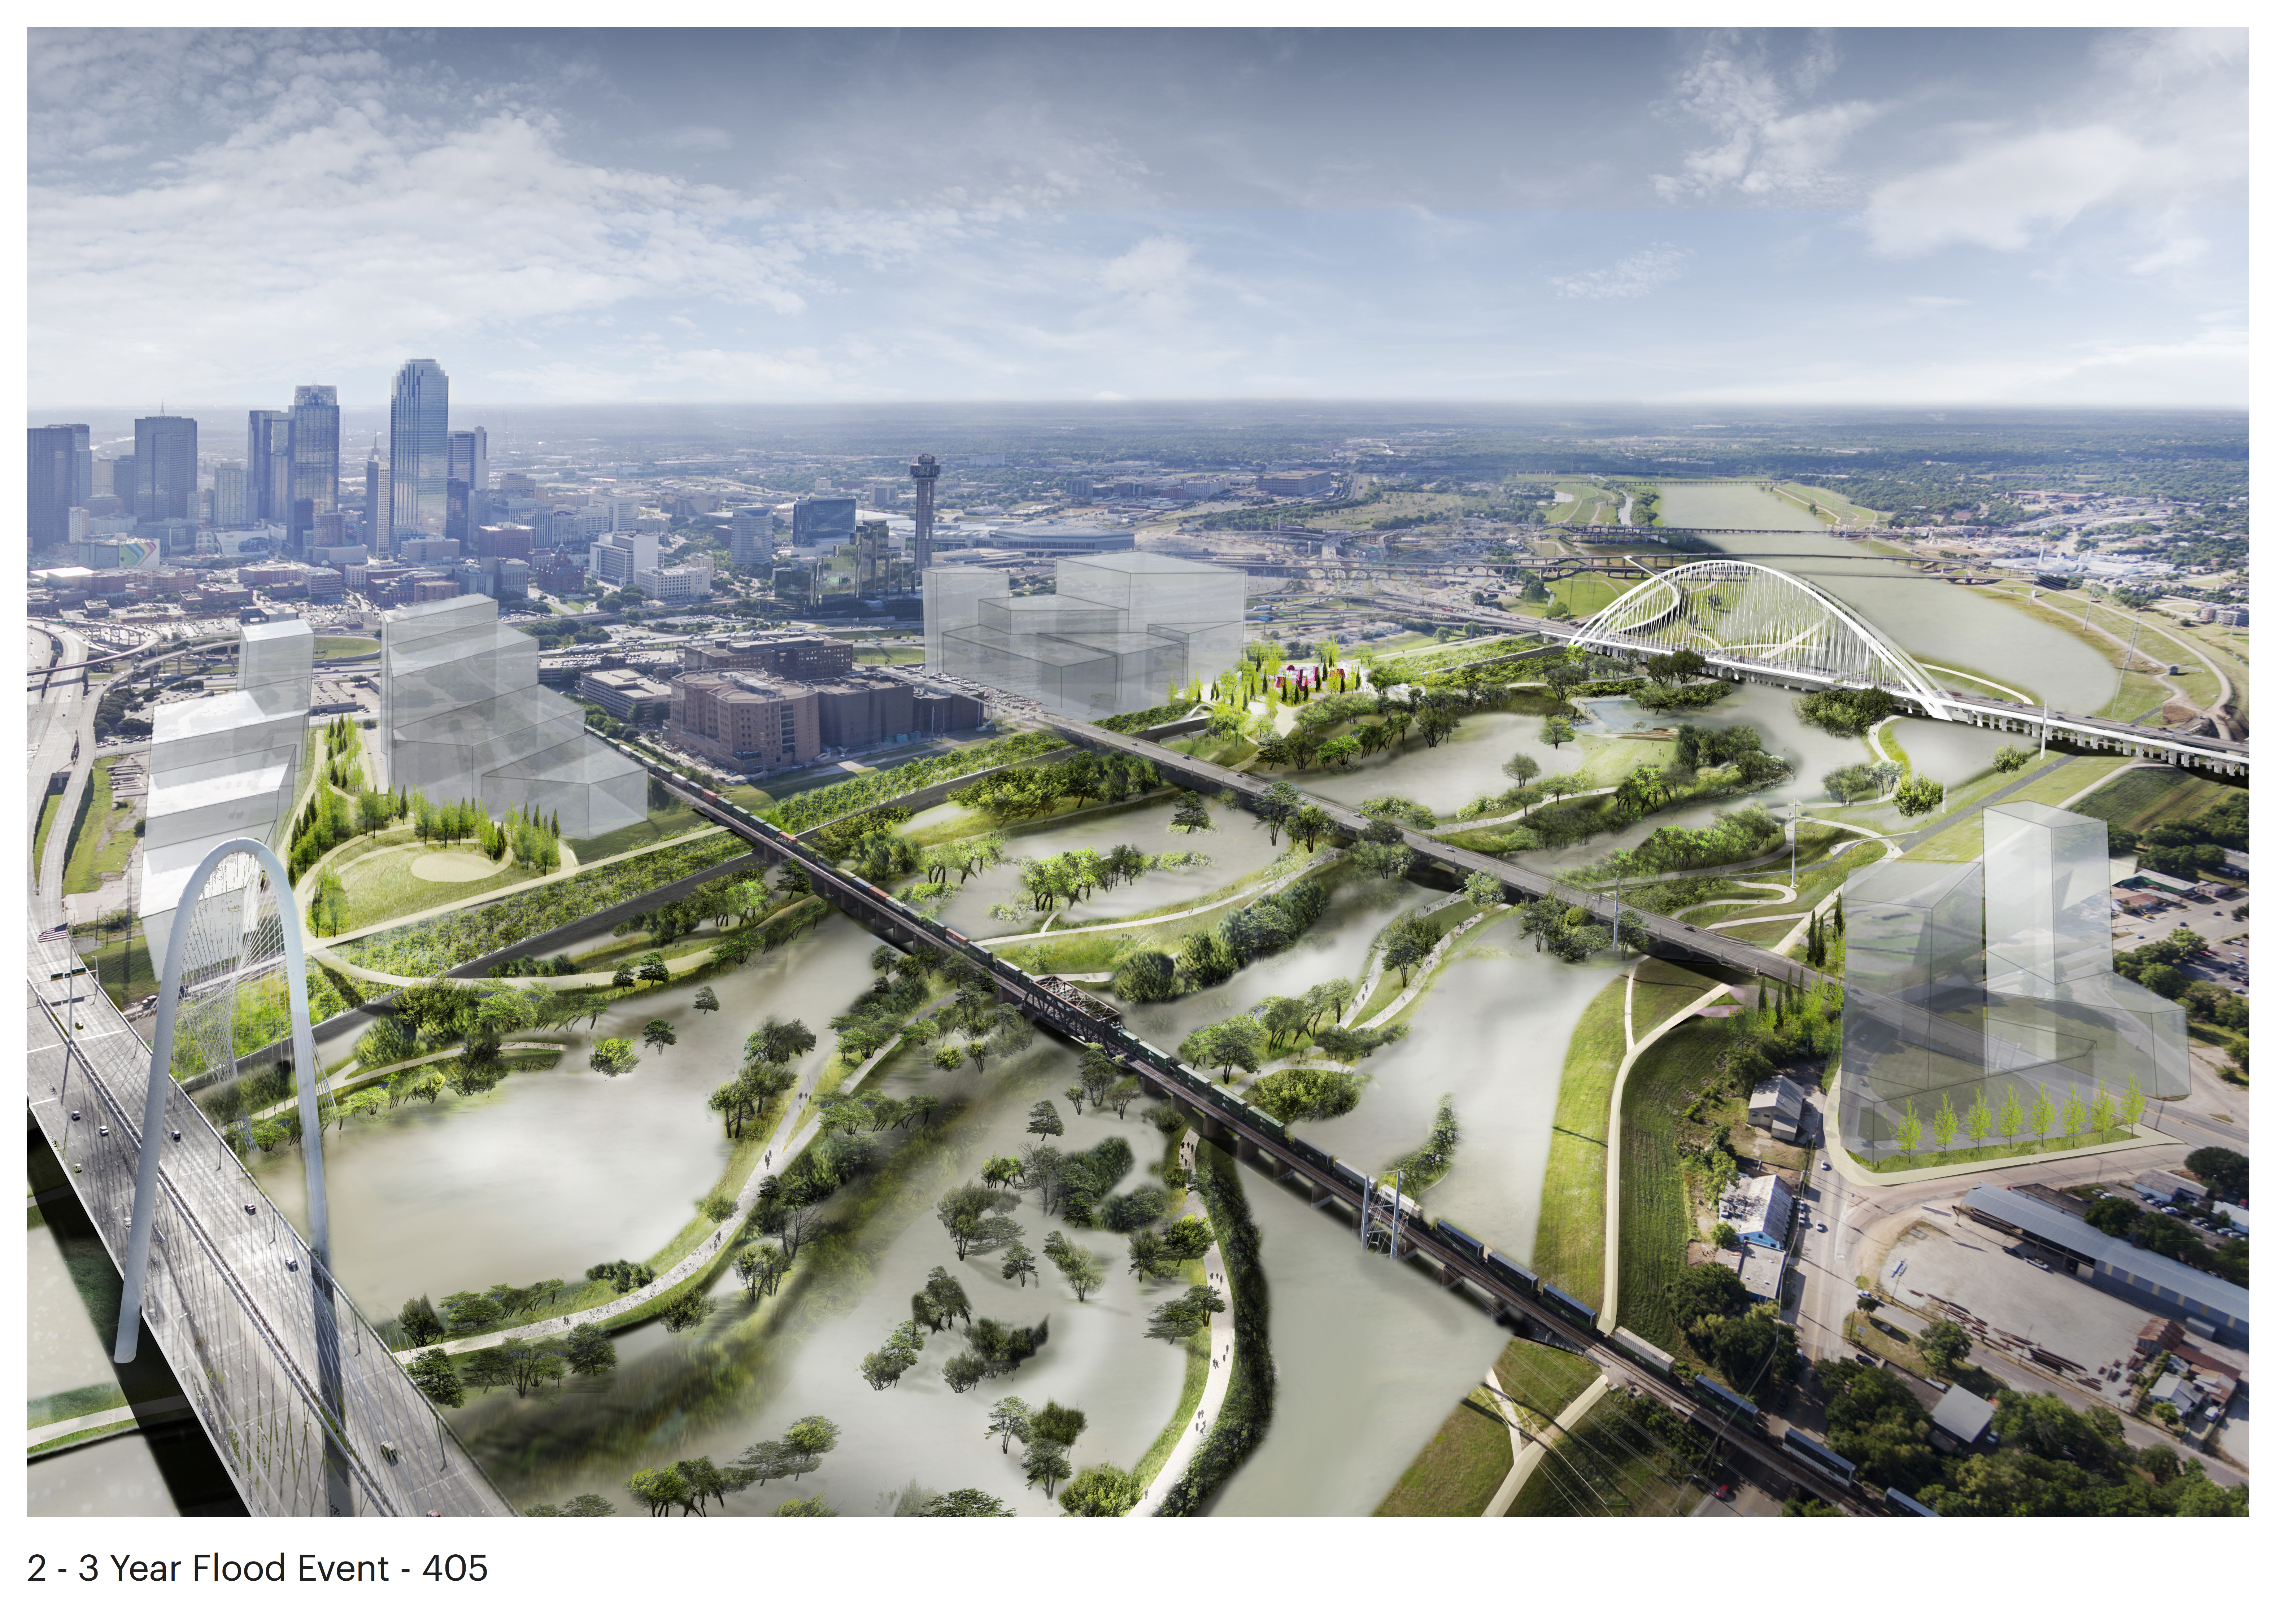 Trinity River floodplain set to become one of nation's largest and greenest urban parks